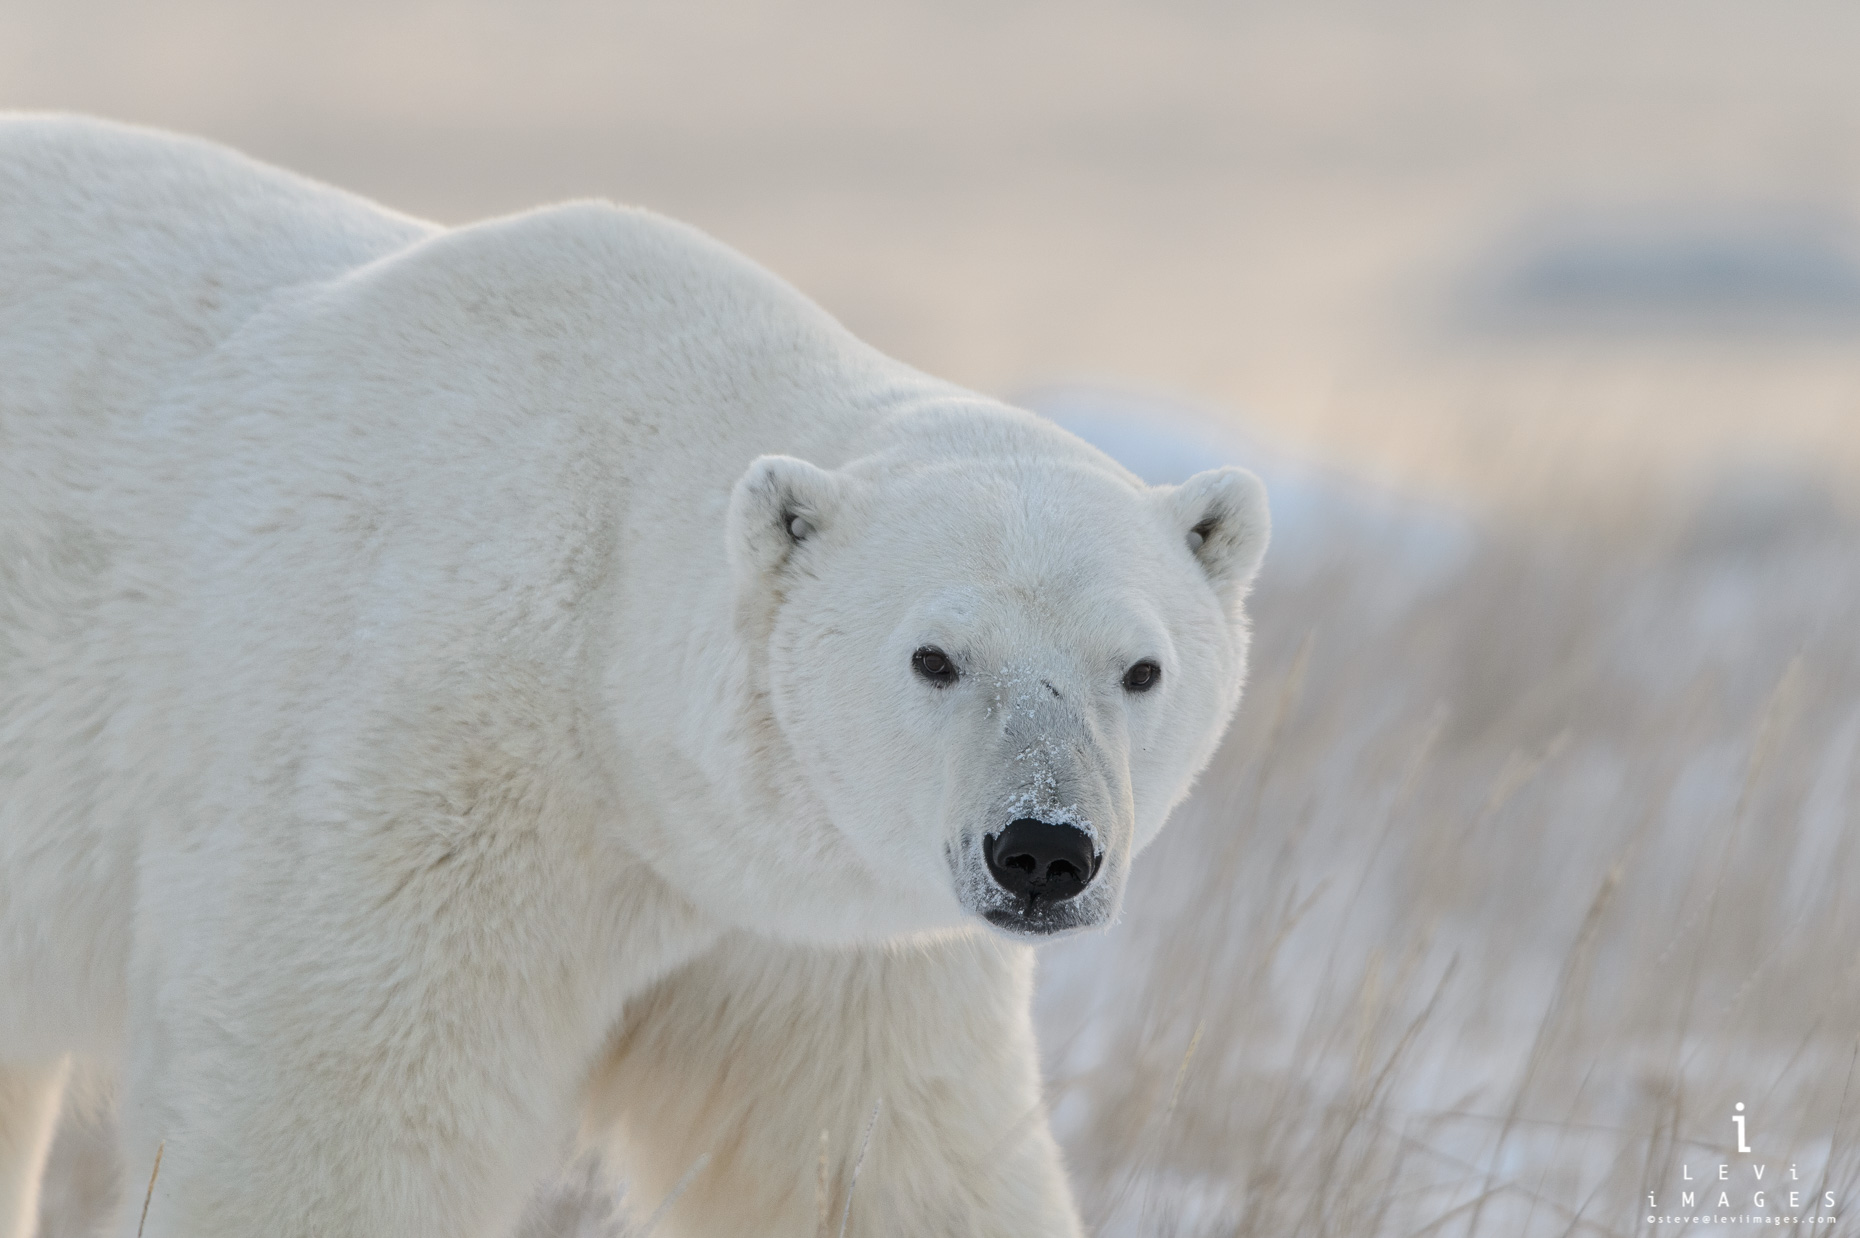 Polar bear (Ursus maritimus) in morning light. Manitoba, Canada